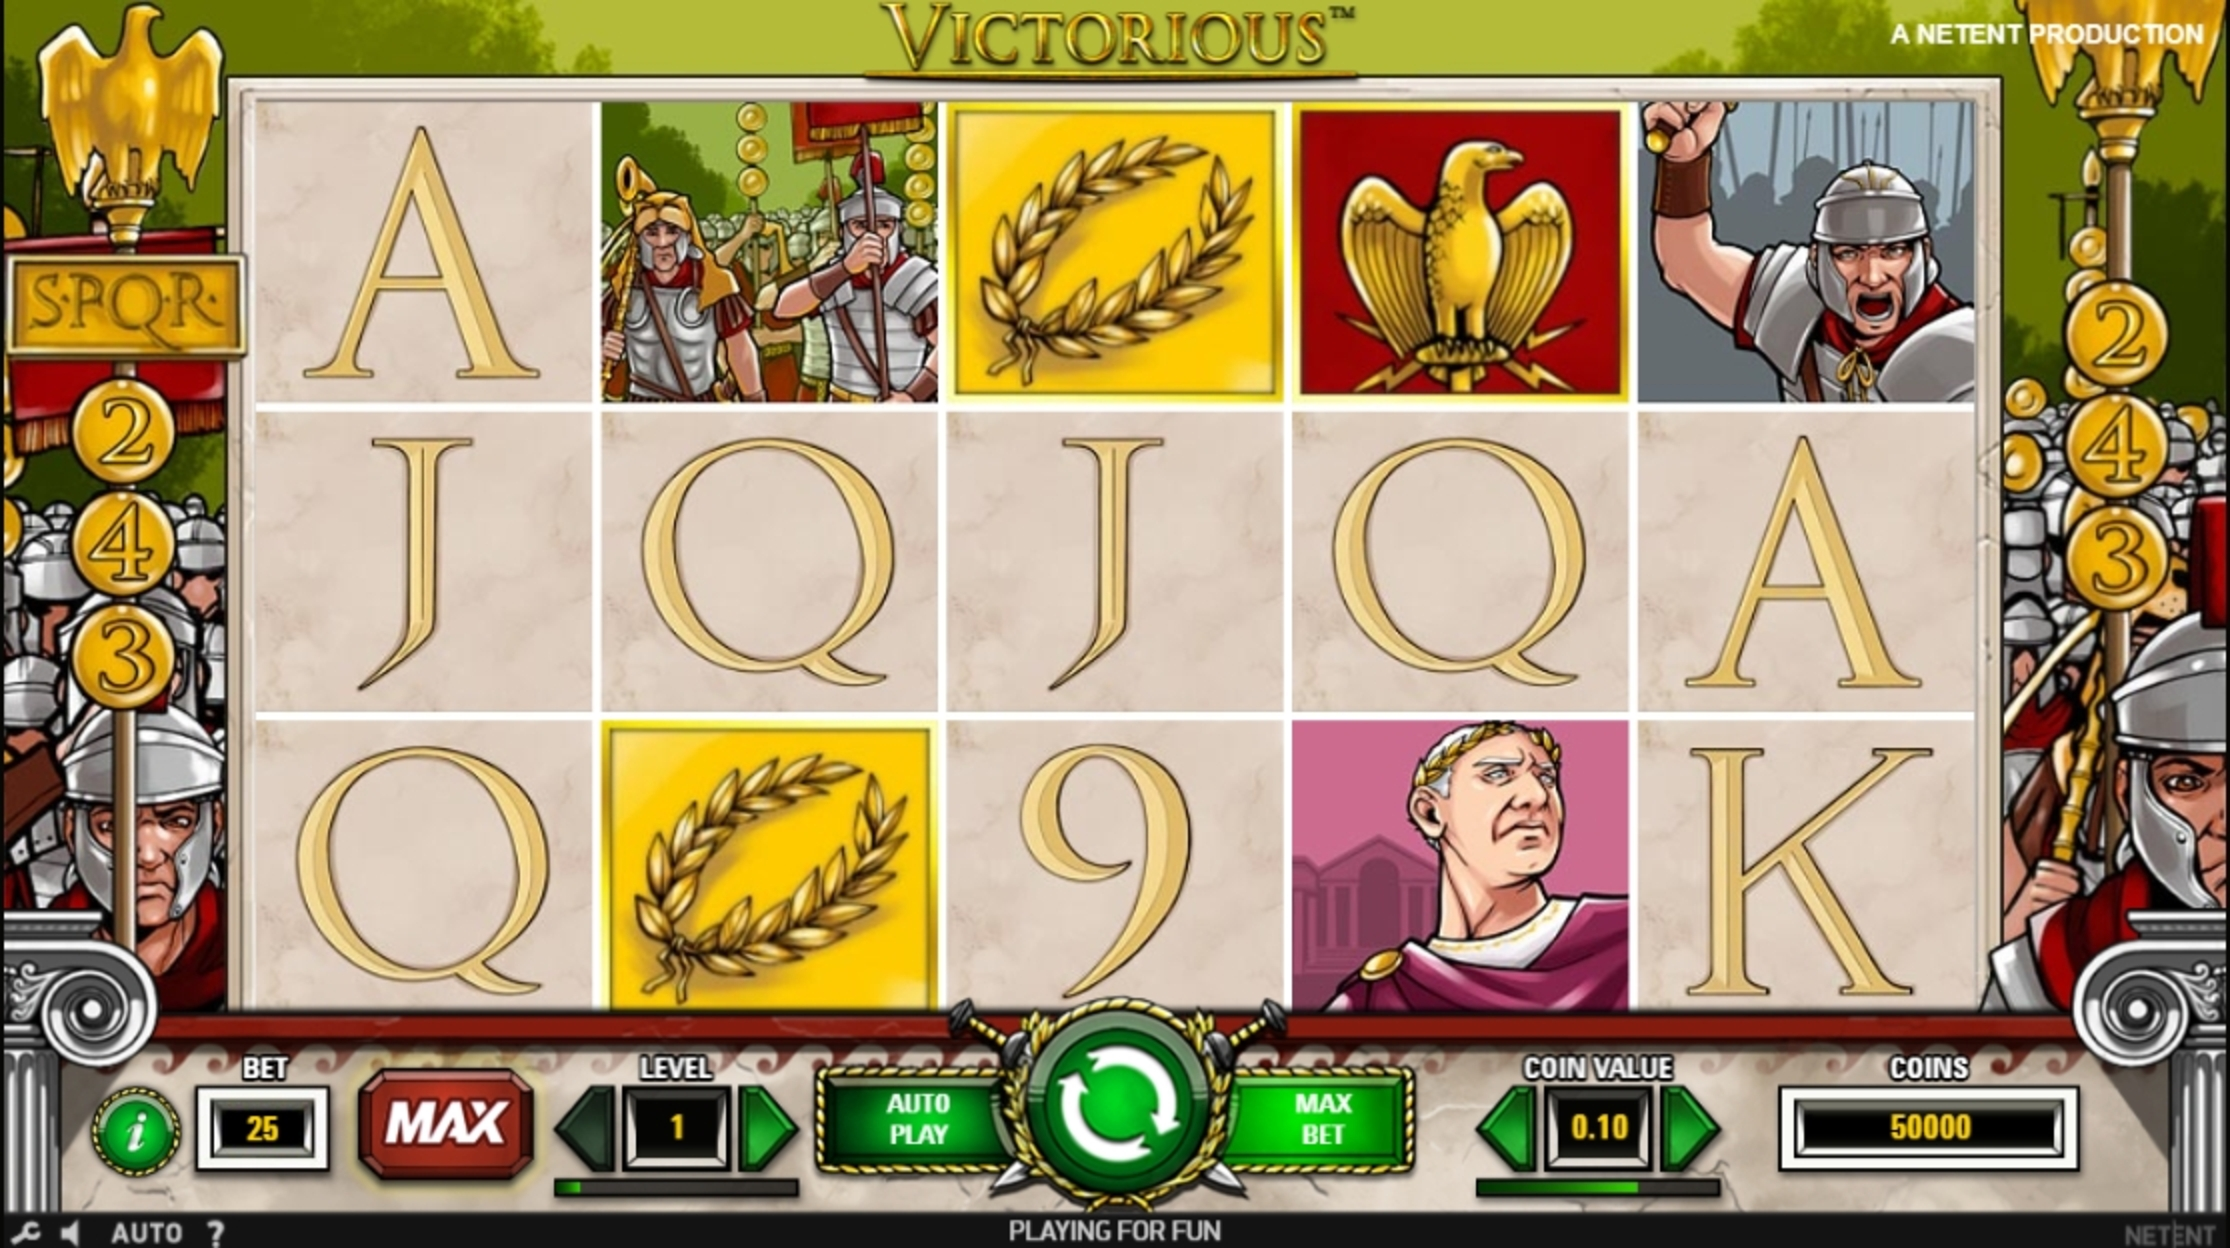 Reels in Victorious Slot Game by NetEnt